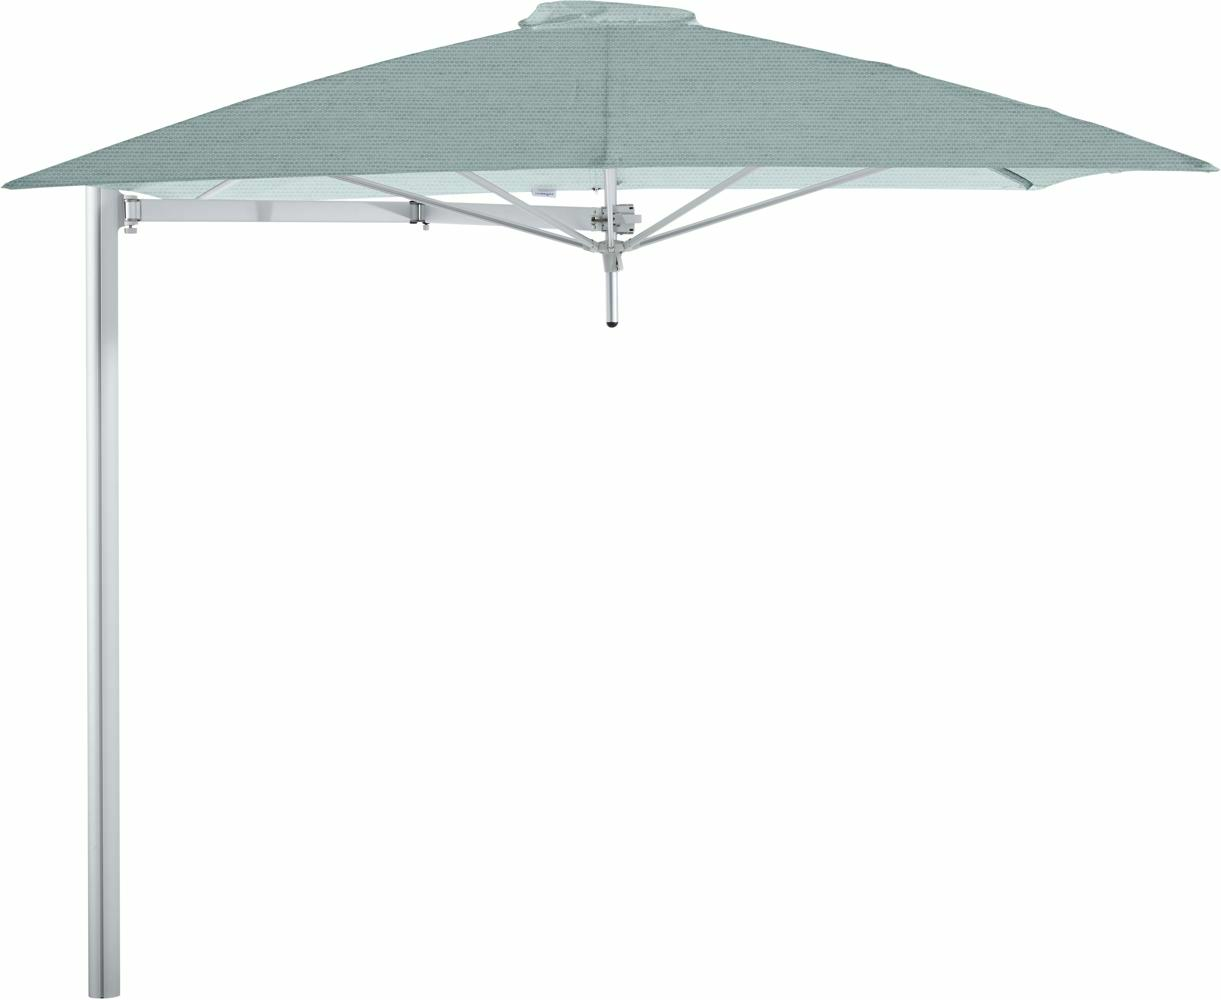 Paraflex cantilever umbrella square 2,3 m with Curacao fabric and a Neo arm